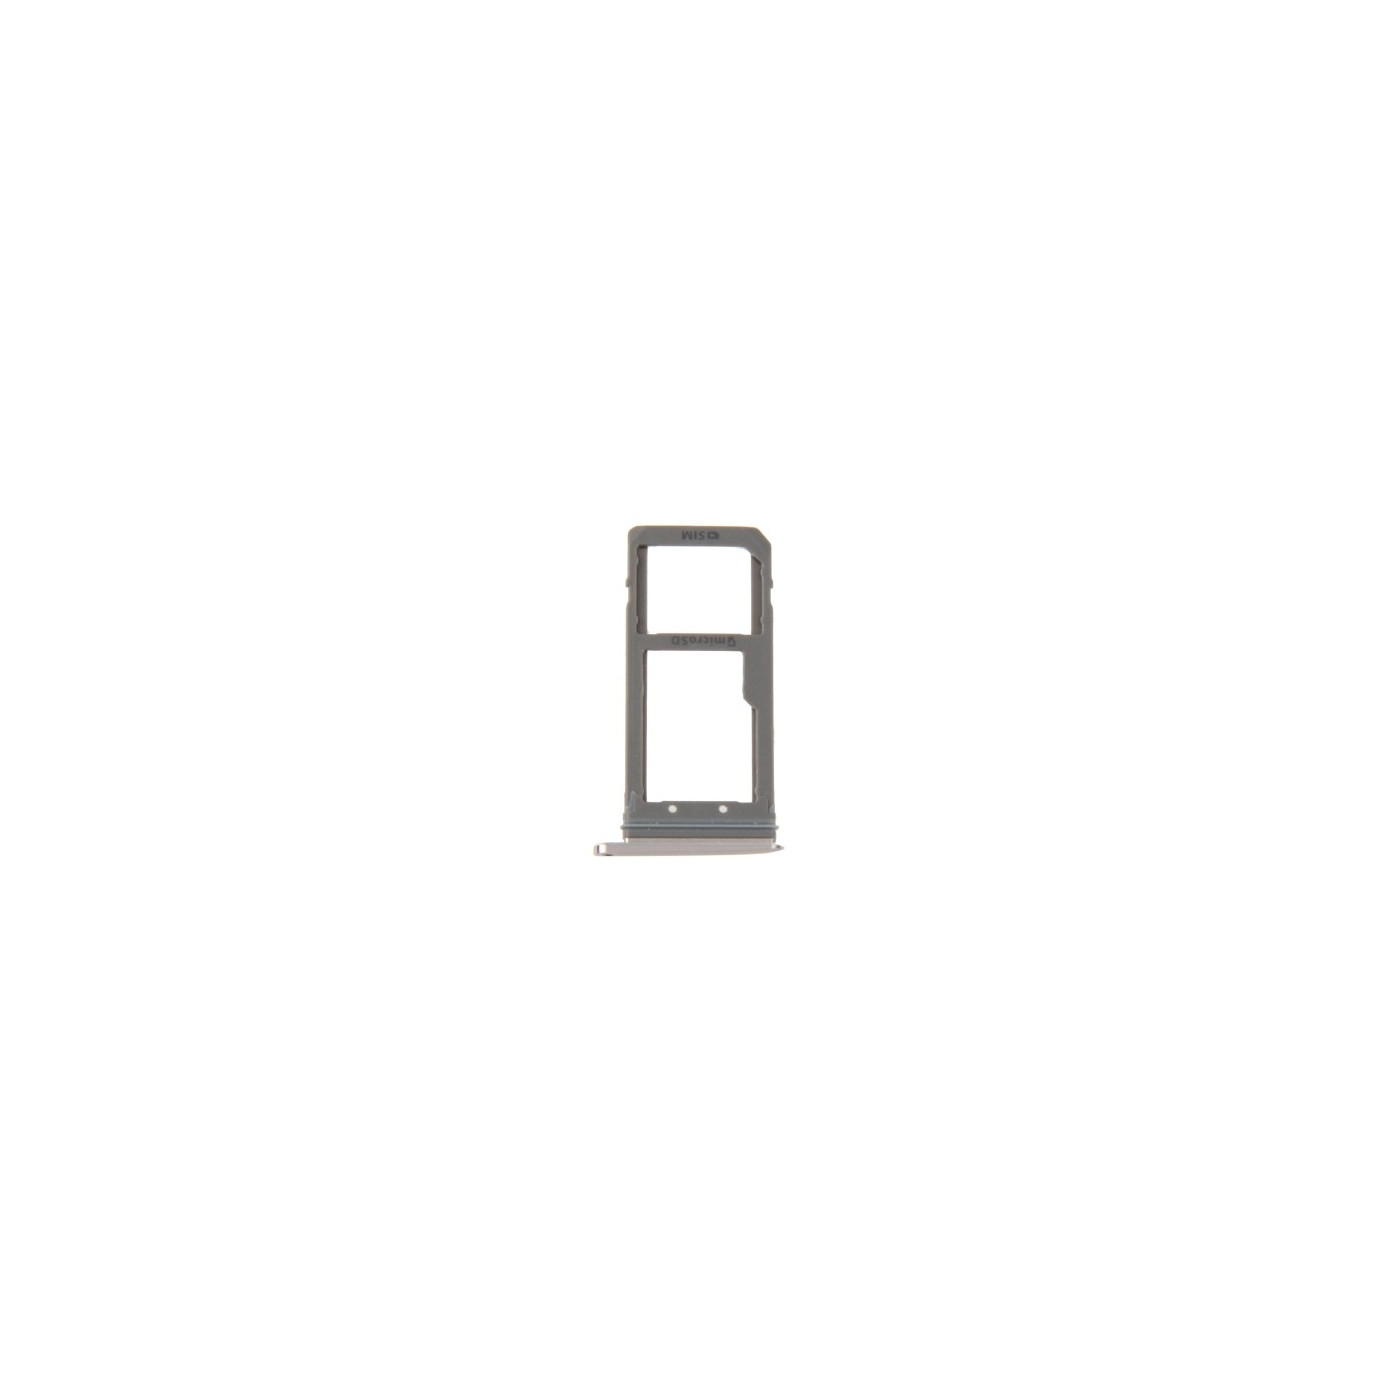 Porte-carte Micro SD Rose Gold Remplacement Samsung Galaxy S7 Edge / G935F